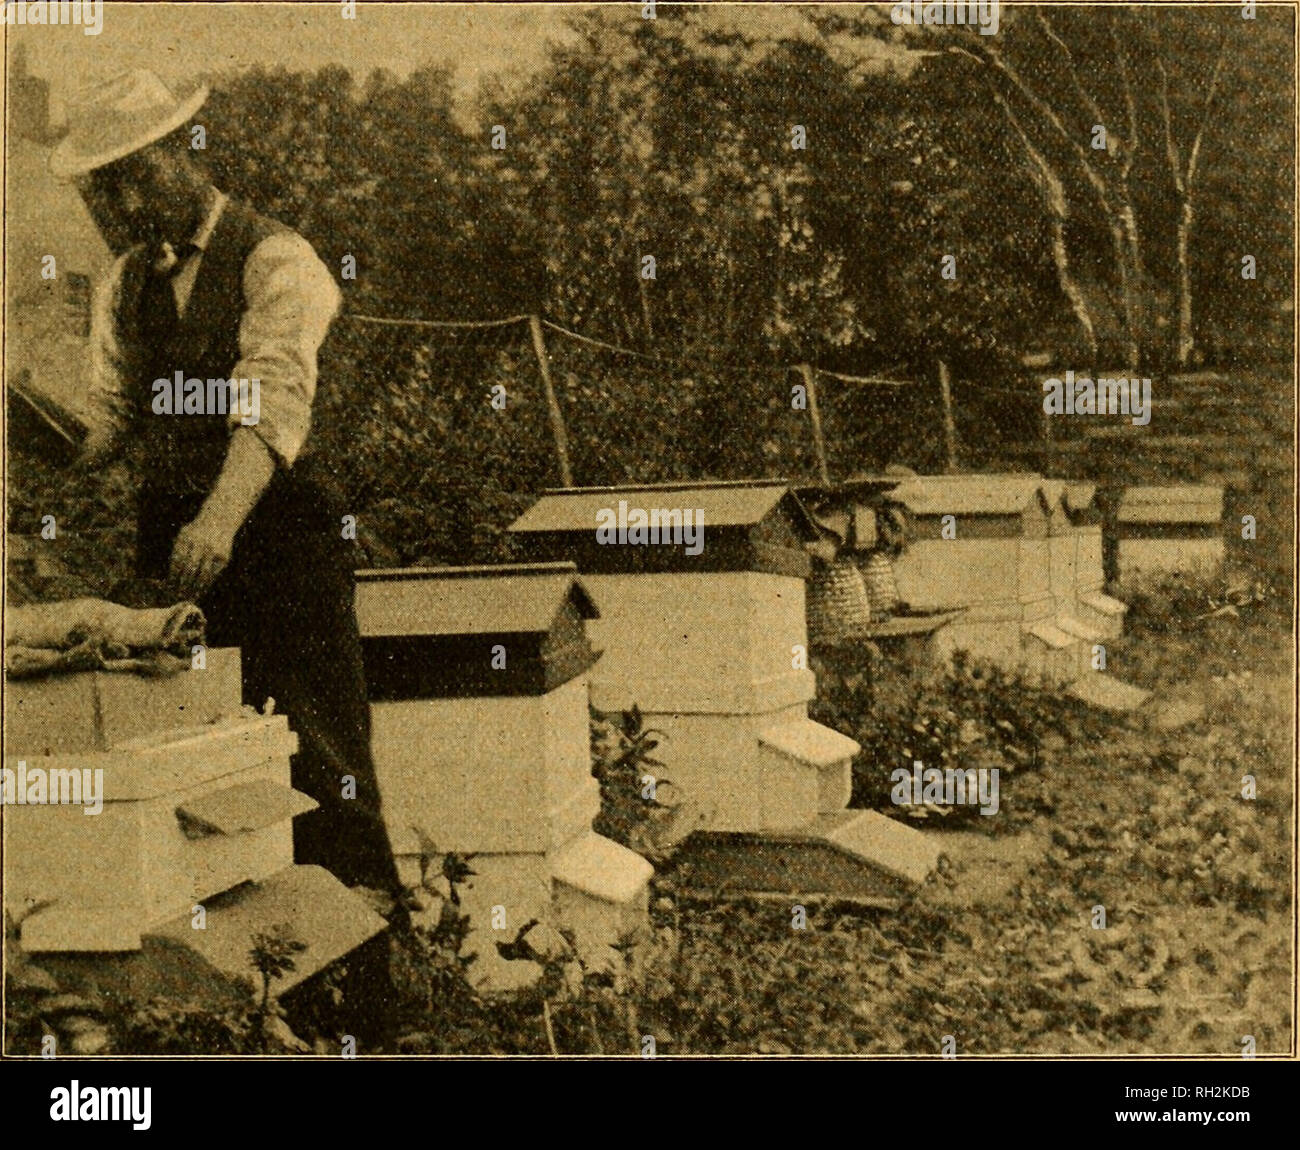 """. British bee journal & bee-keepers adviser. Bees. April 23, 1903.] THE BRITISH BEE JOUENAL. 165 take the hint, and add bee-keeping to their list of extra subjects. Writing of himself, our Scotch friend says :— """" My home of the honey bee is situated some twelve miles from John o' Groats. The apiary consists of twenty frame-hives and three straw skeps. The county of Caithness can boast of several excellent and up-to-date apiaries, and, but for the disastrous year of 1902, all would be in a thriving condition and give satisfac- tory results. For example, let me say, I com- menced the ye - Stock Image"""